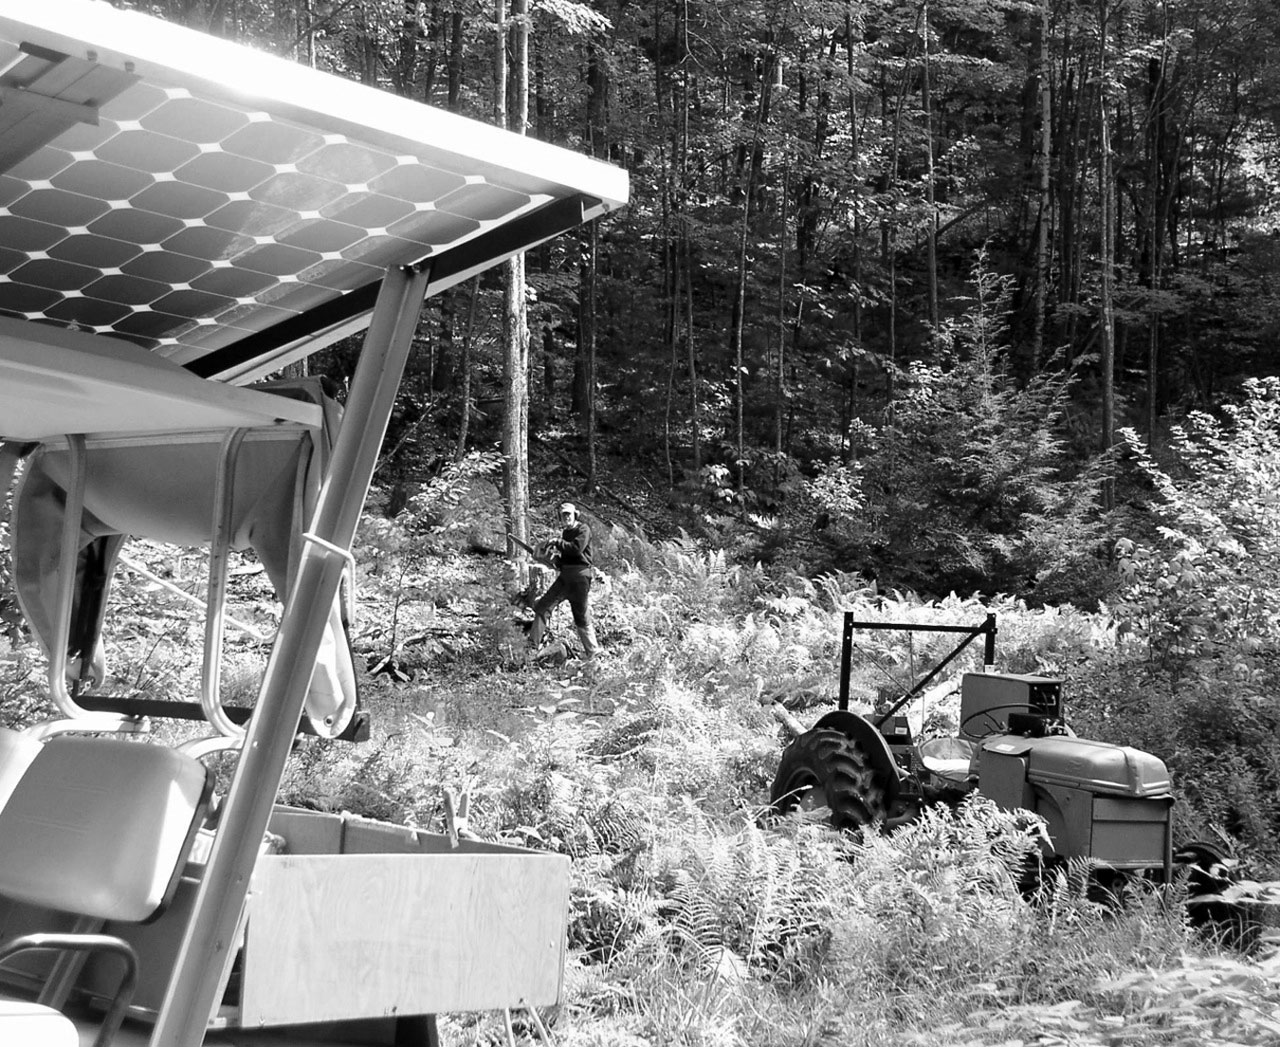 Solar Woodlot Operation Shines in Waterford